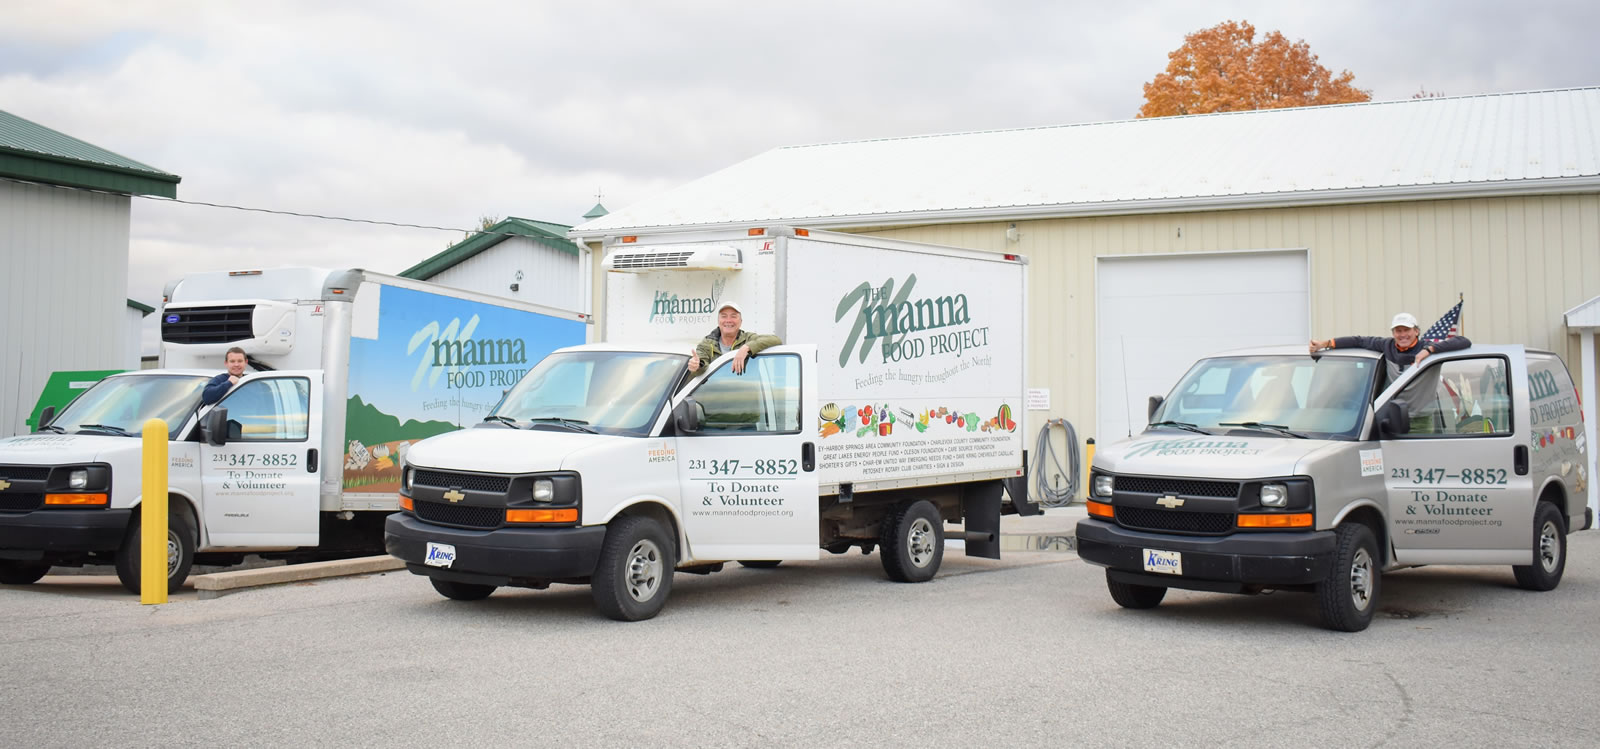 About Manna Food Project - trucks